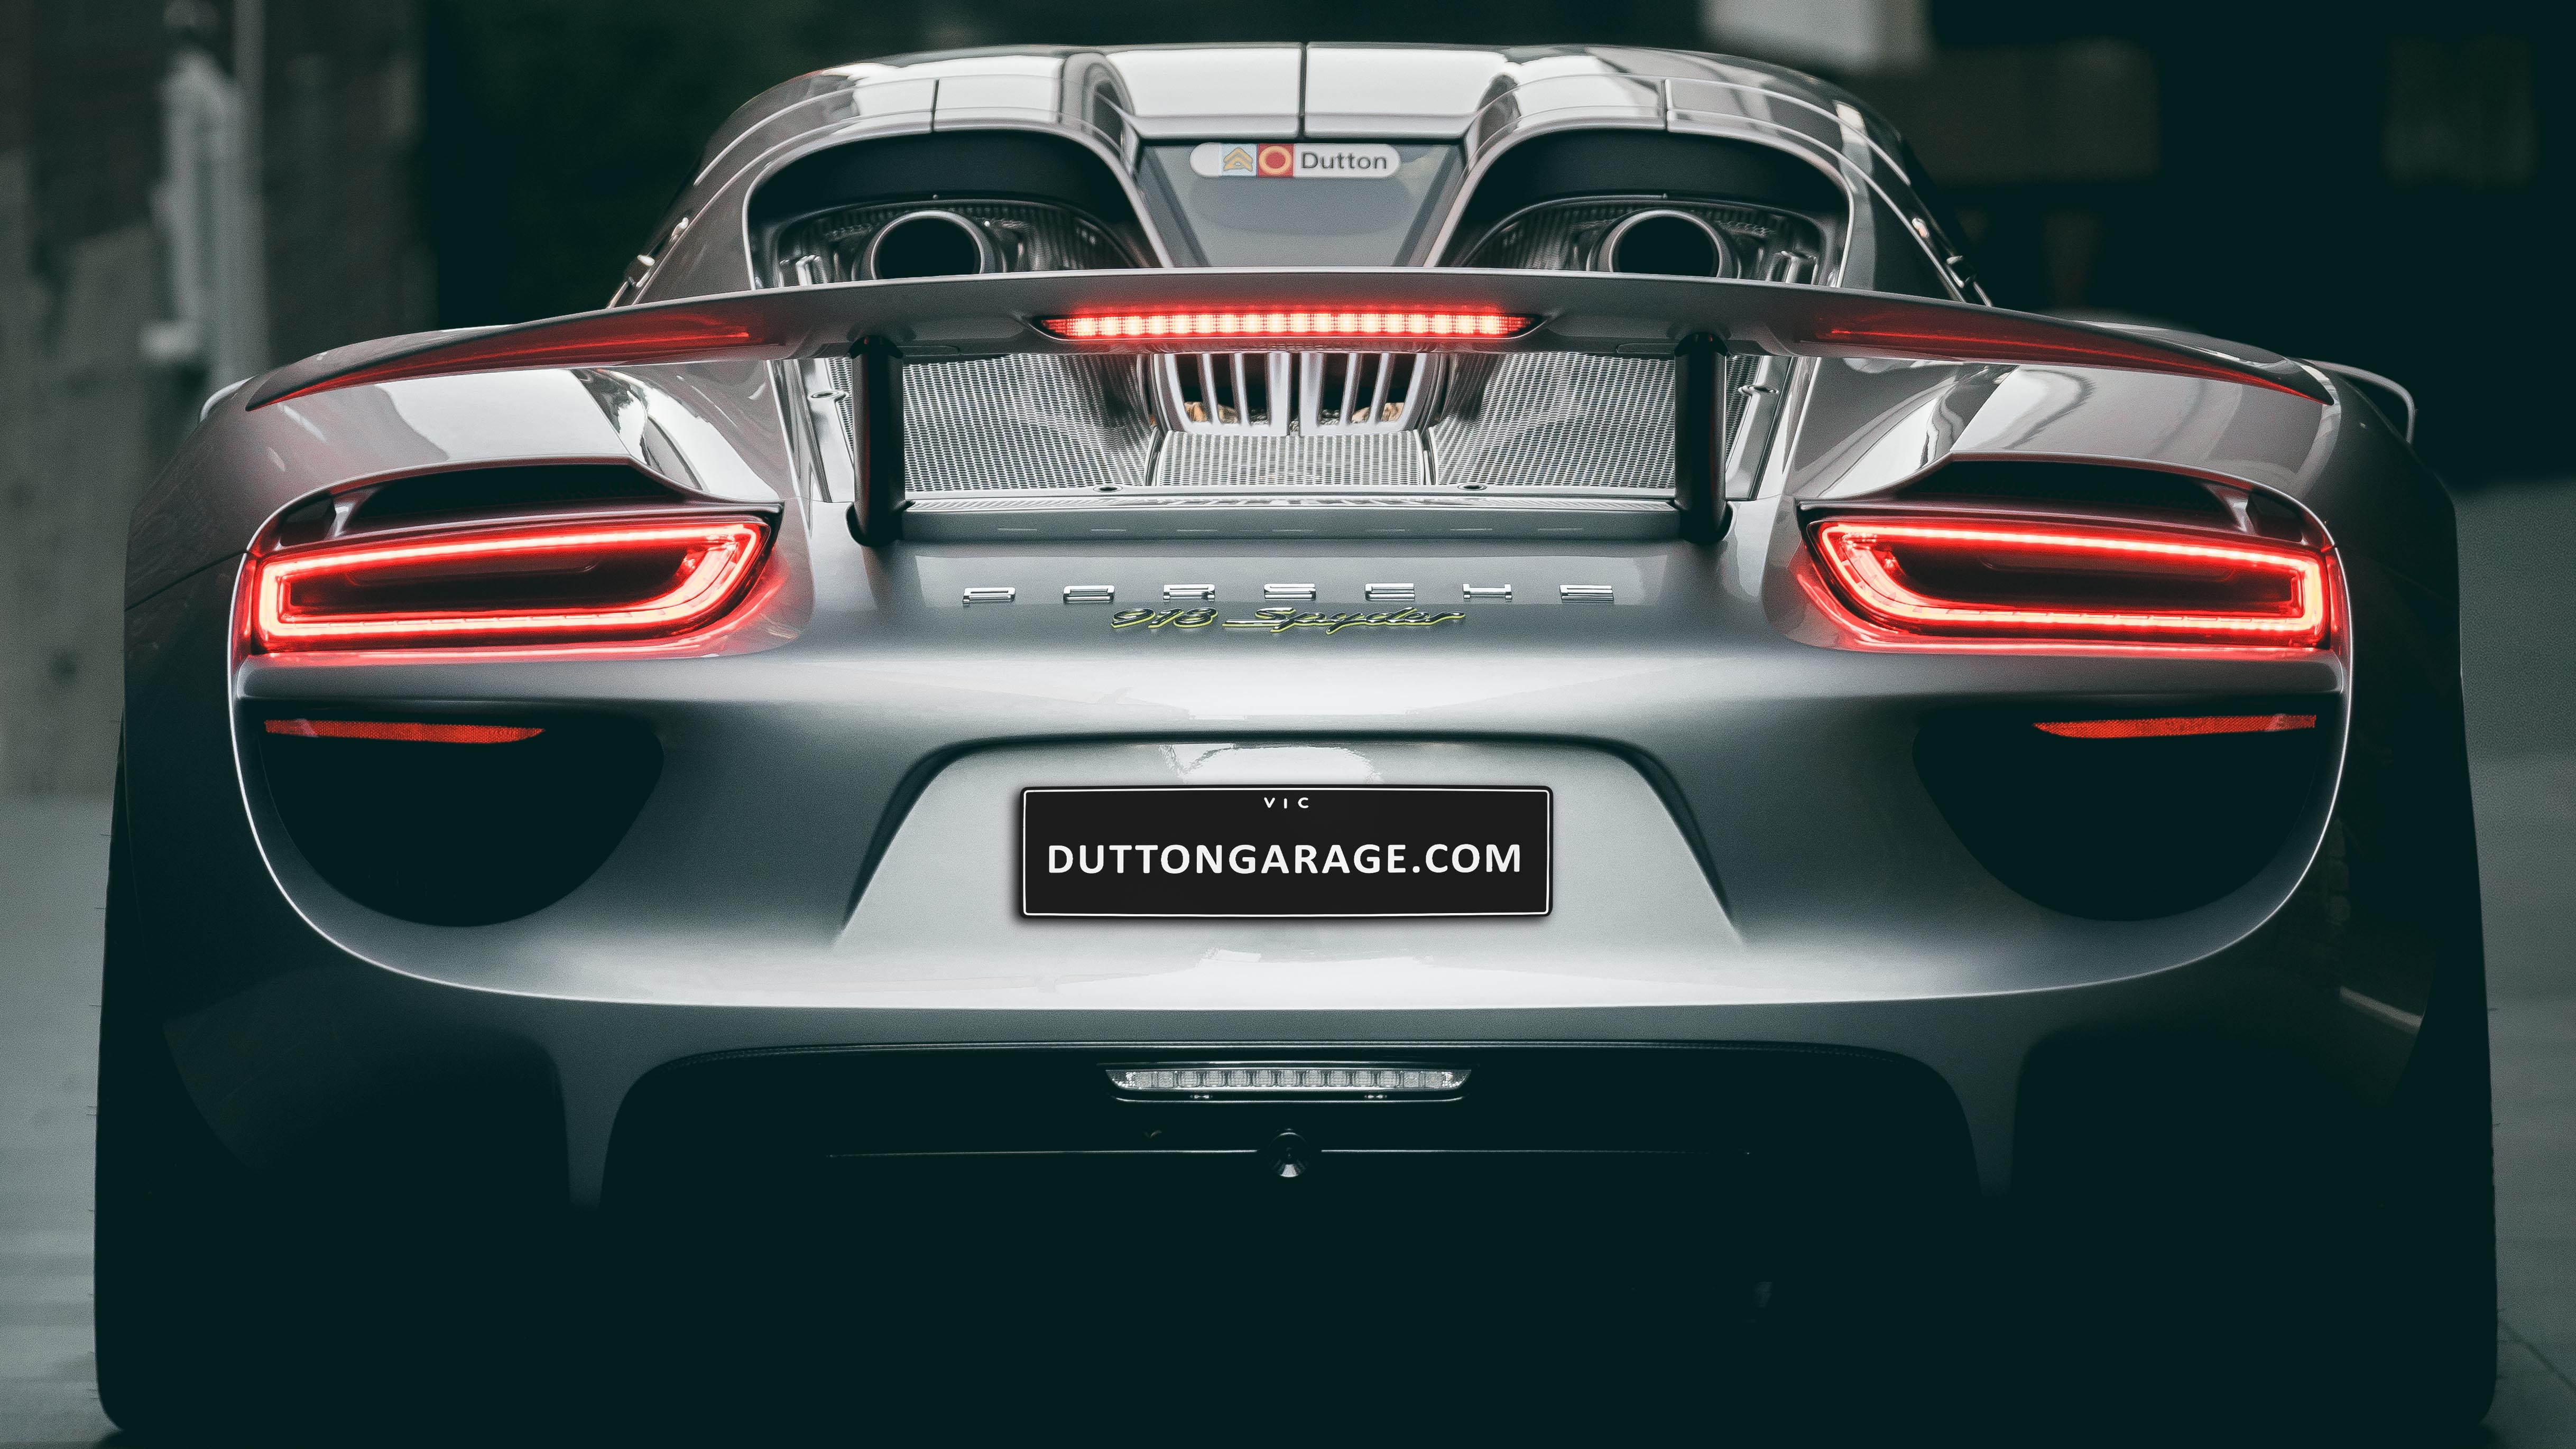 Luxury, Prestige and Classic Cars For Sale | Dutton Garage